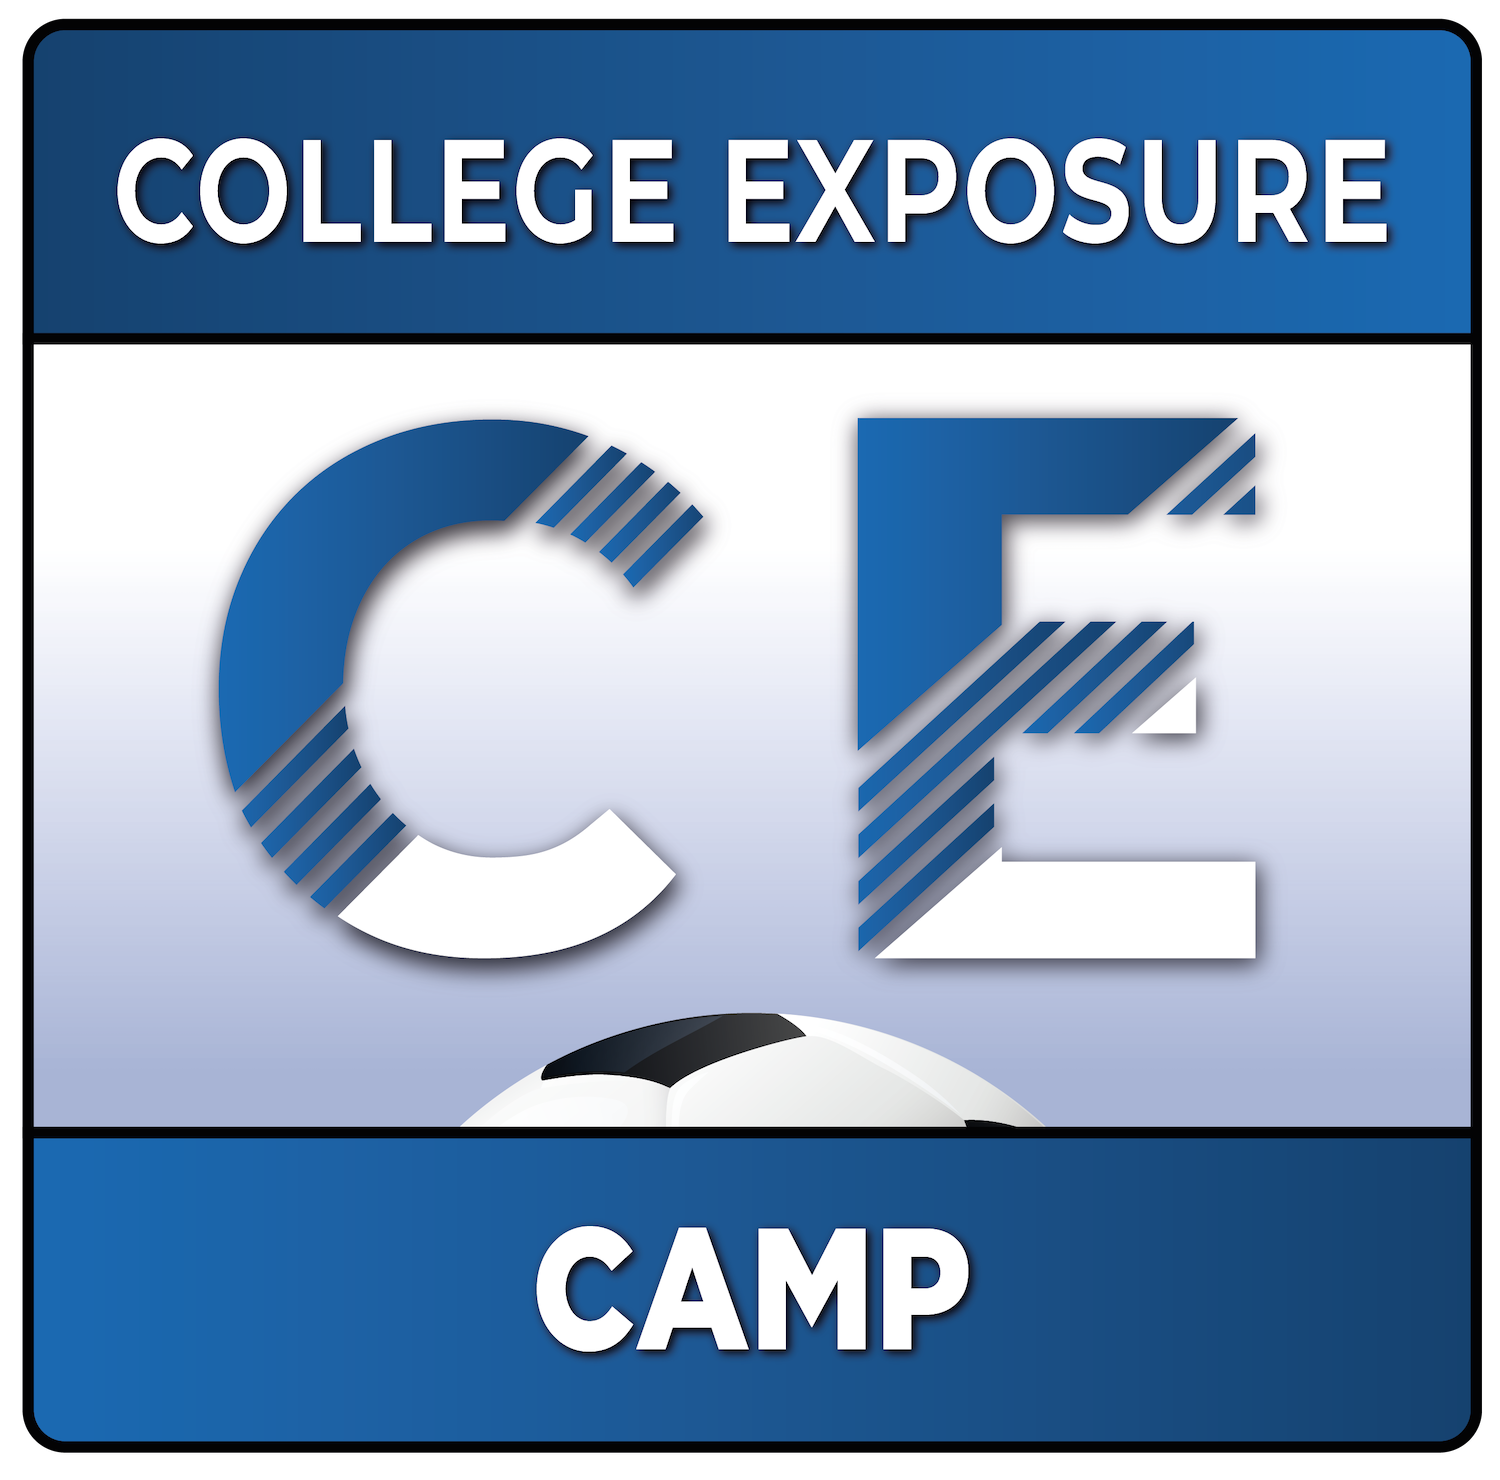 College-Exposure-Camp2